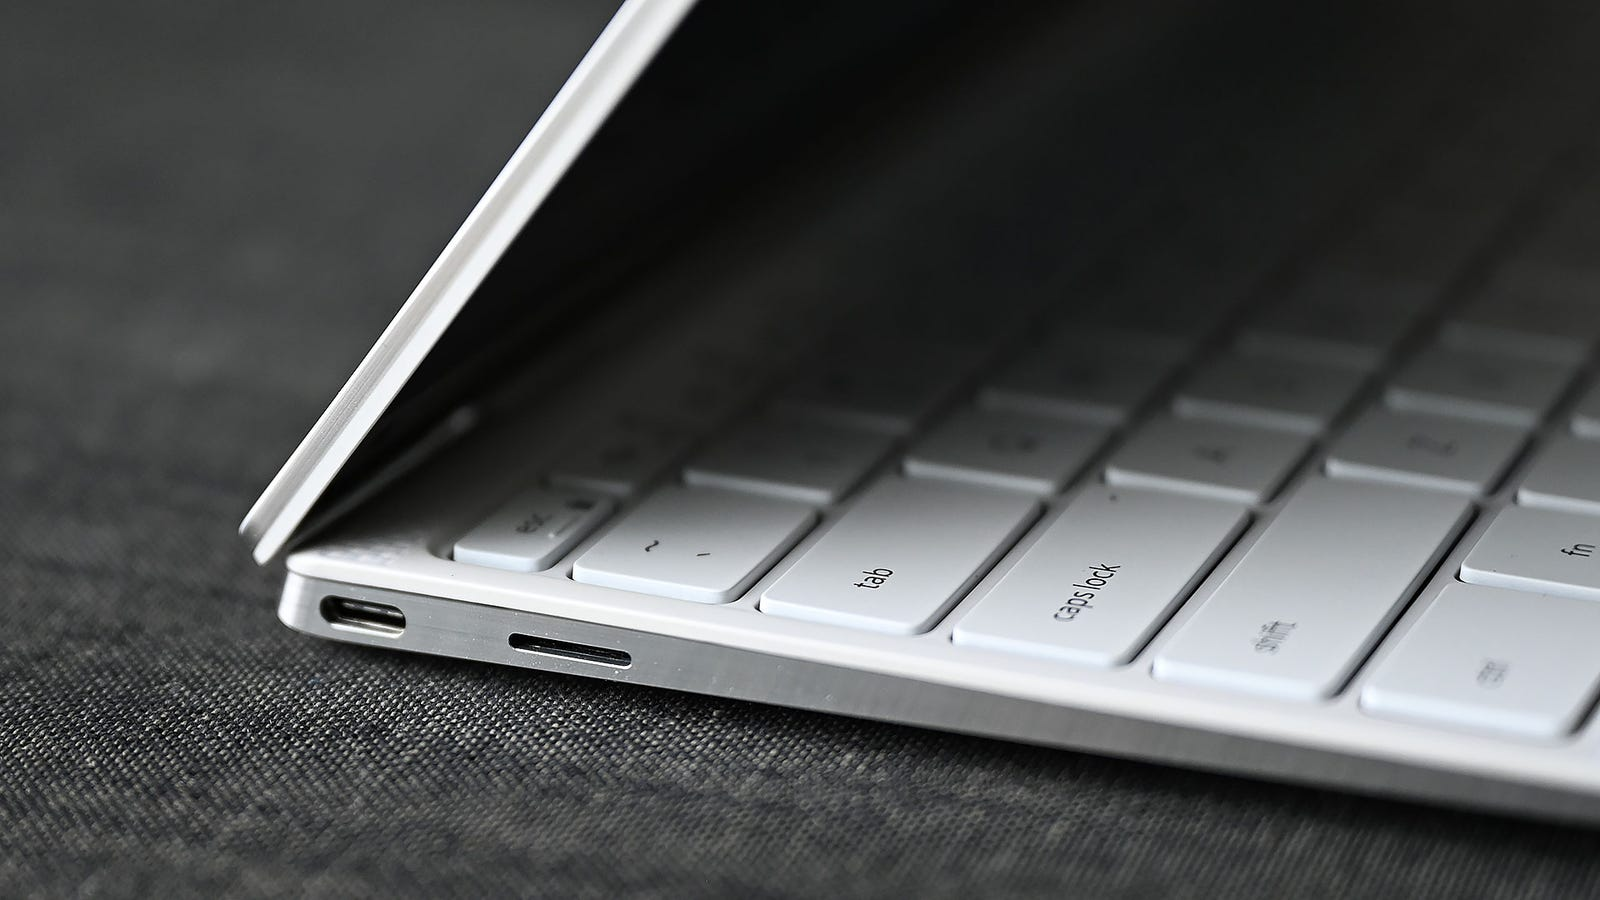 The built-in microSD card slot is new for 2020.